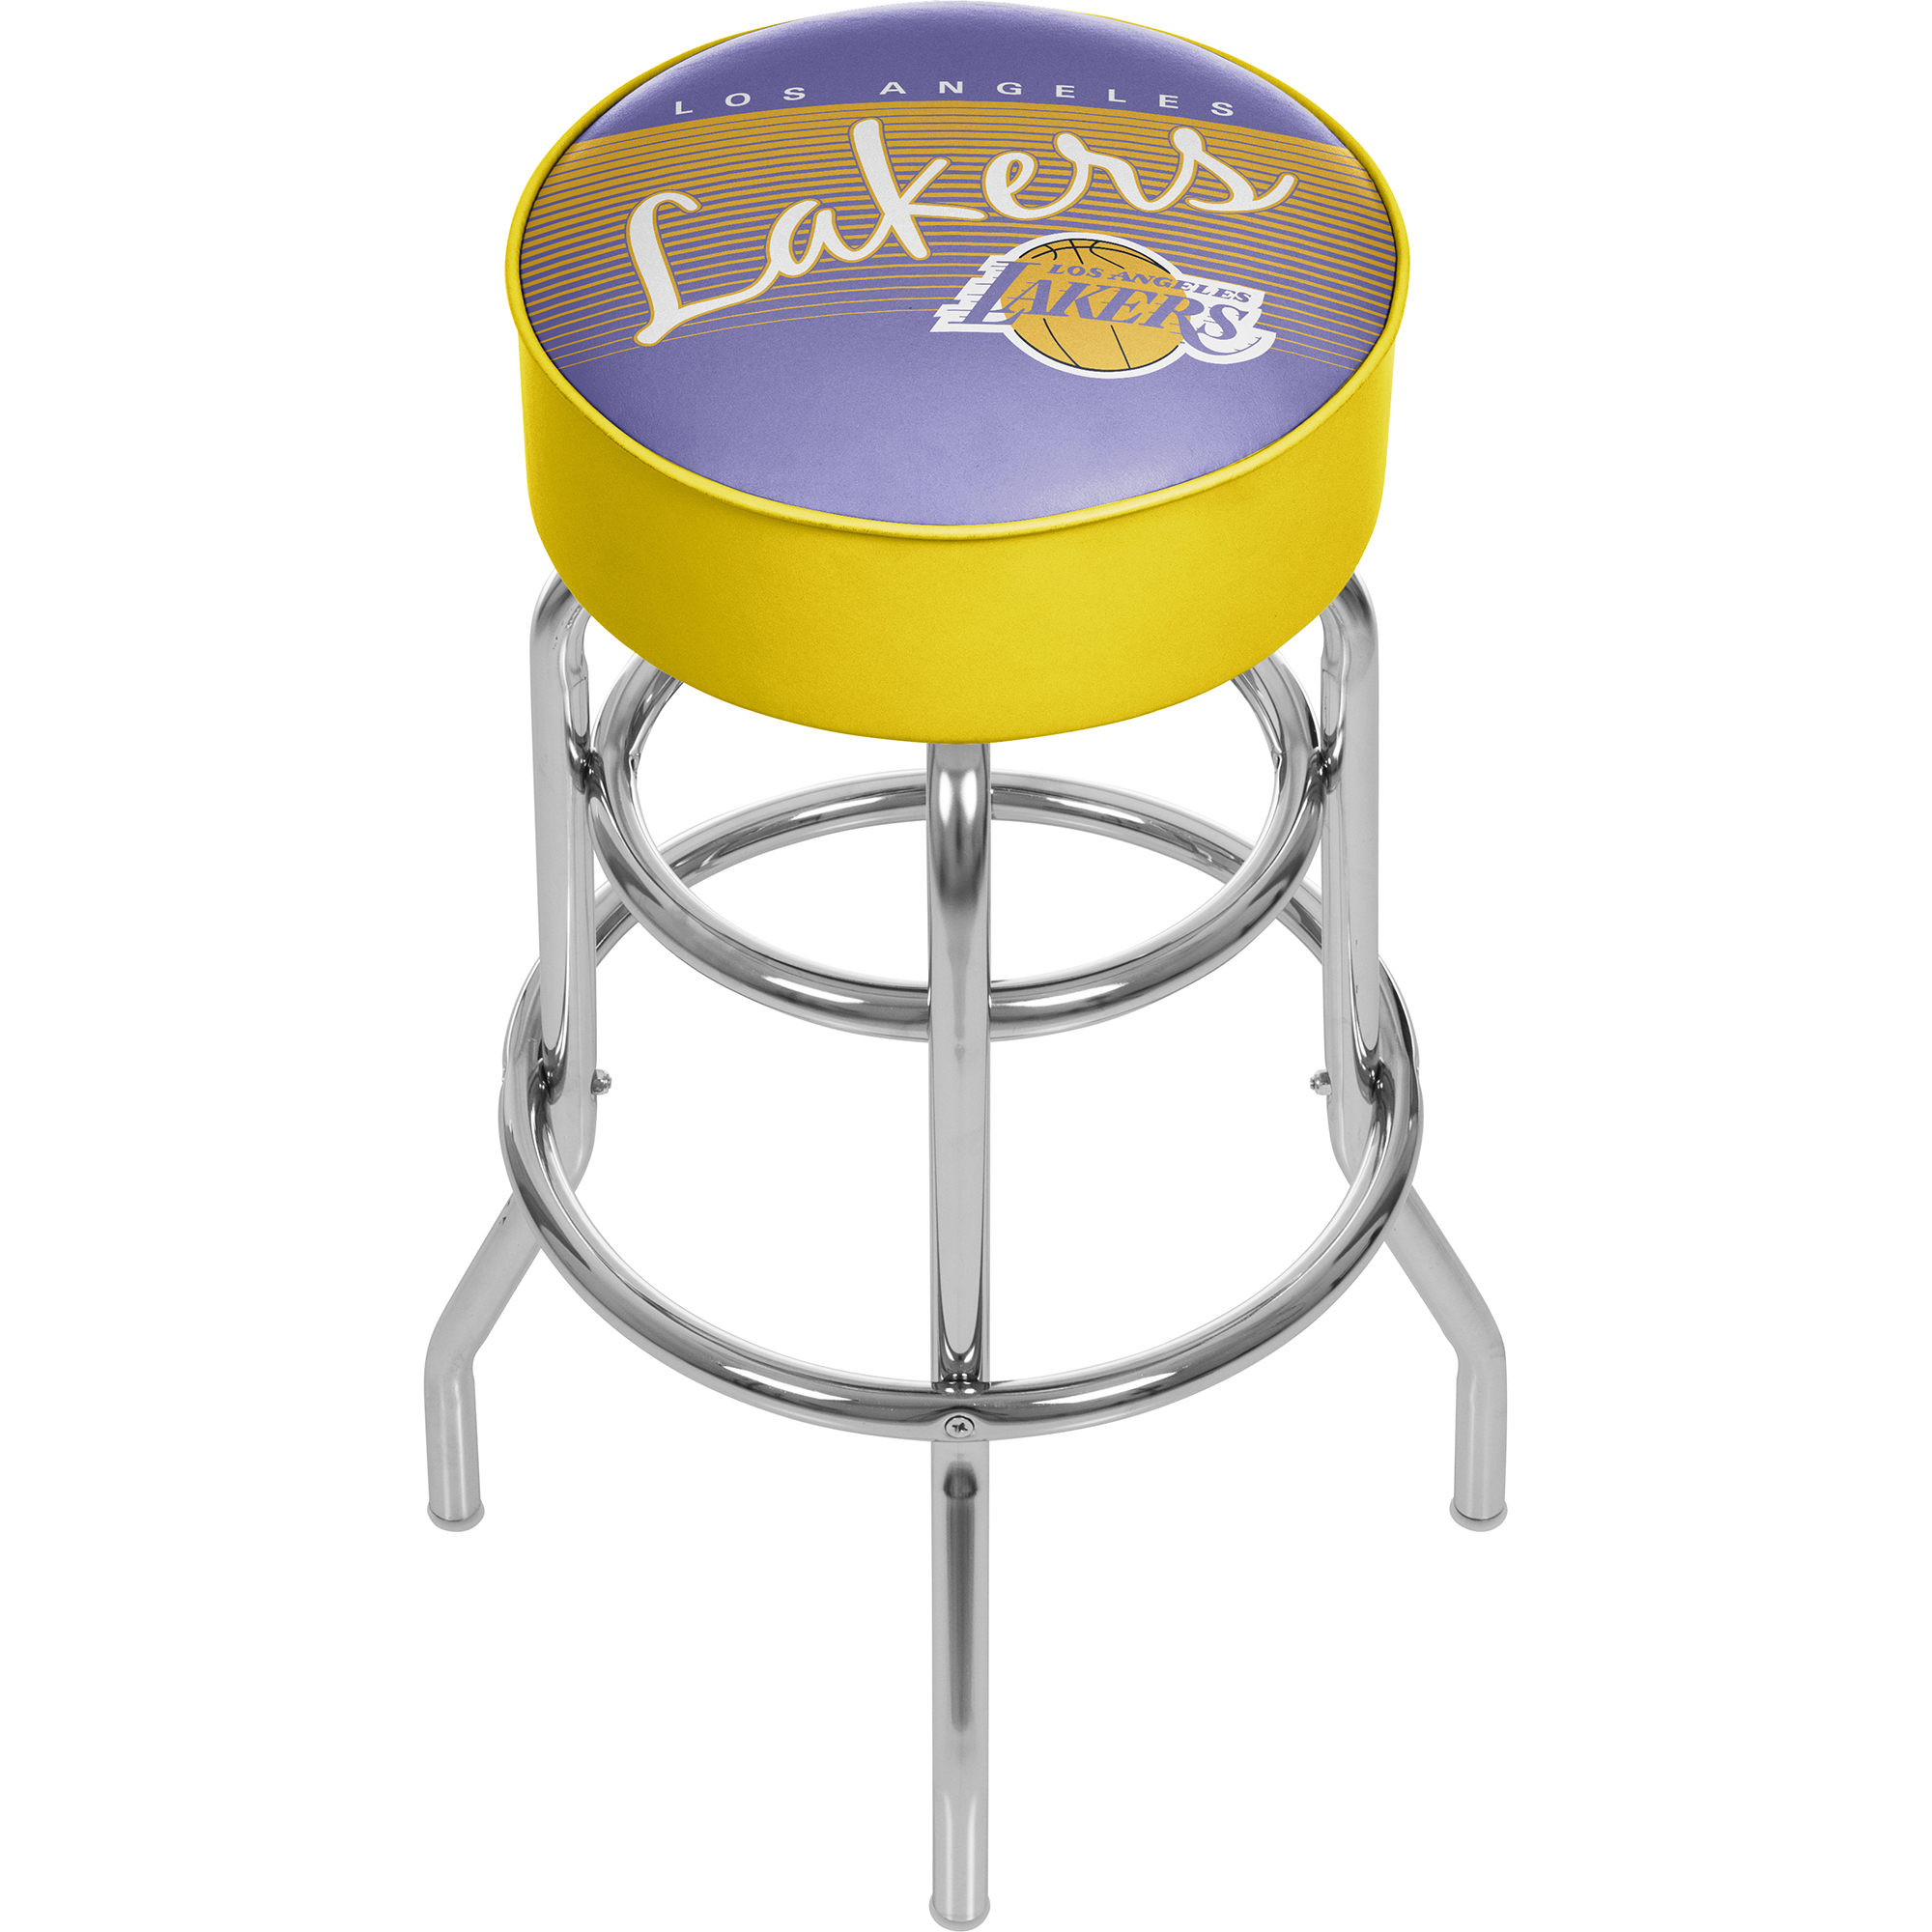 Los Angeles Lakers NBA Hardwood Classics Padded Swivel Bar Stool 30 Inches High